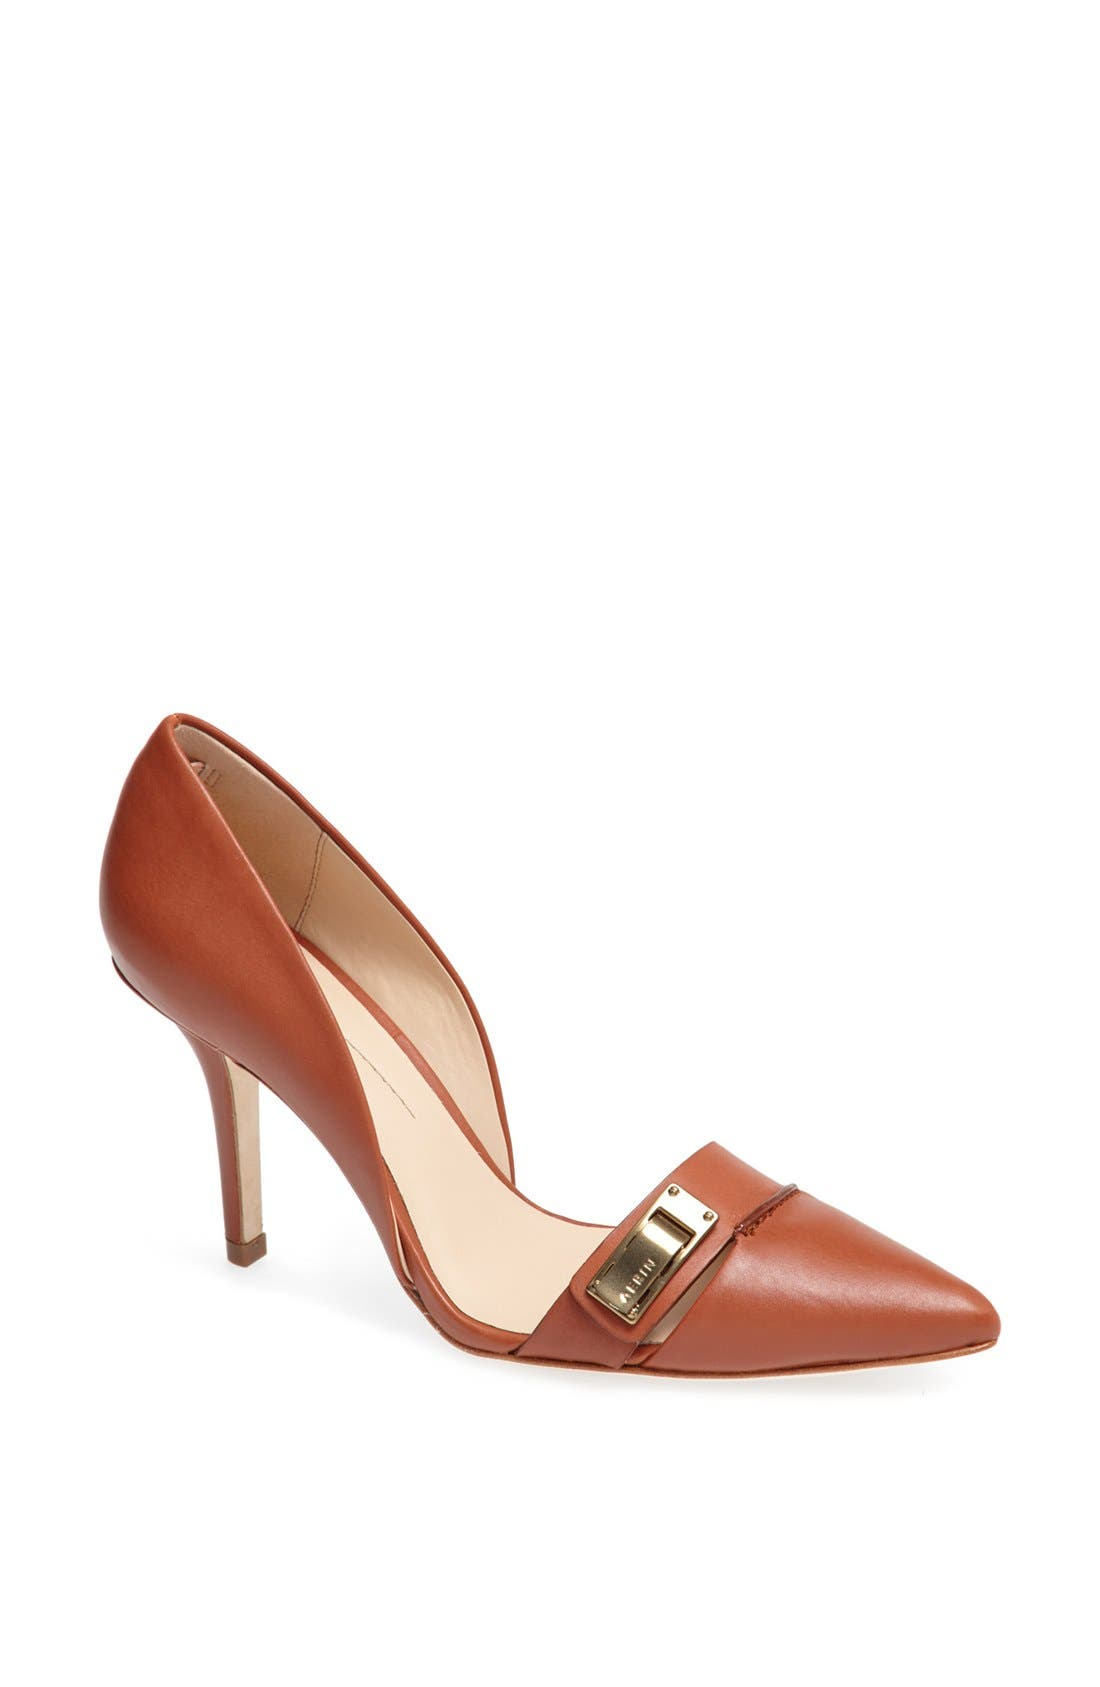 Alternate Image 1 Selected - Aerin 'Fatima' Leather Pointy Toe Pump